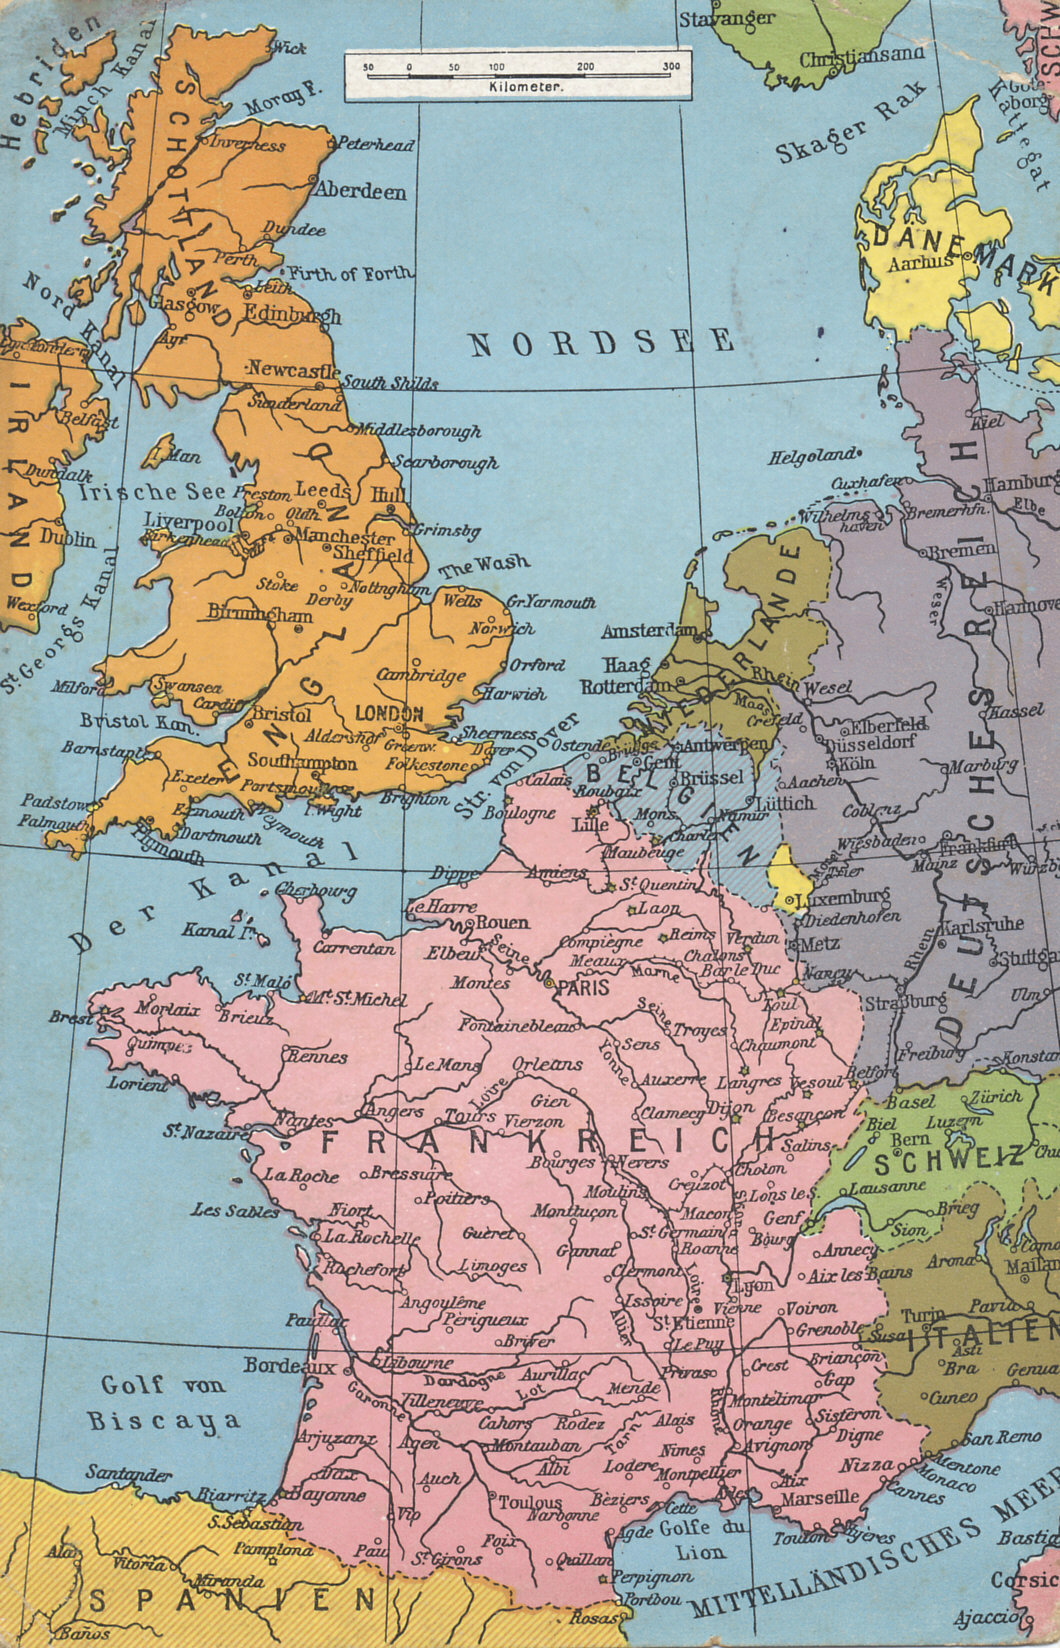 Map of western Europe from the Mediterranean to the North sea, including France and Belgium, the Western Front.